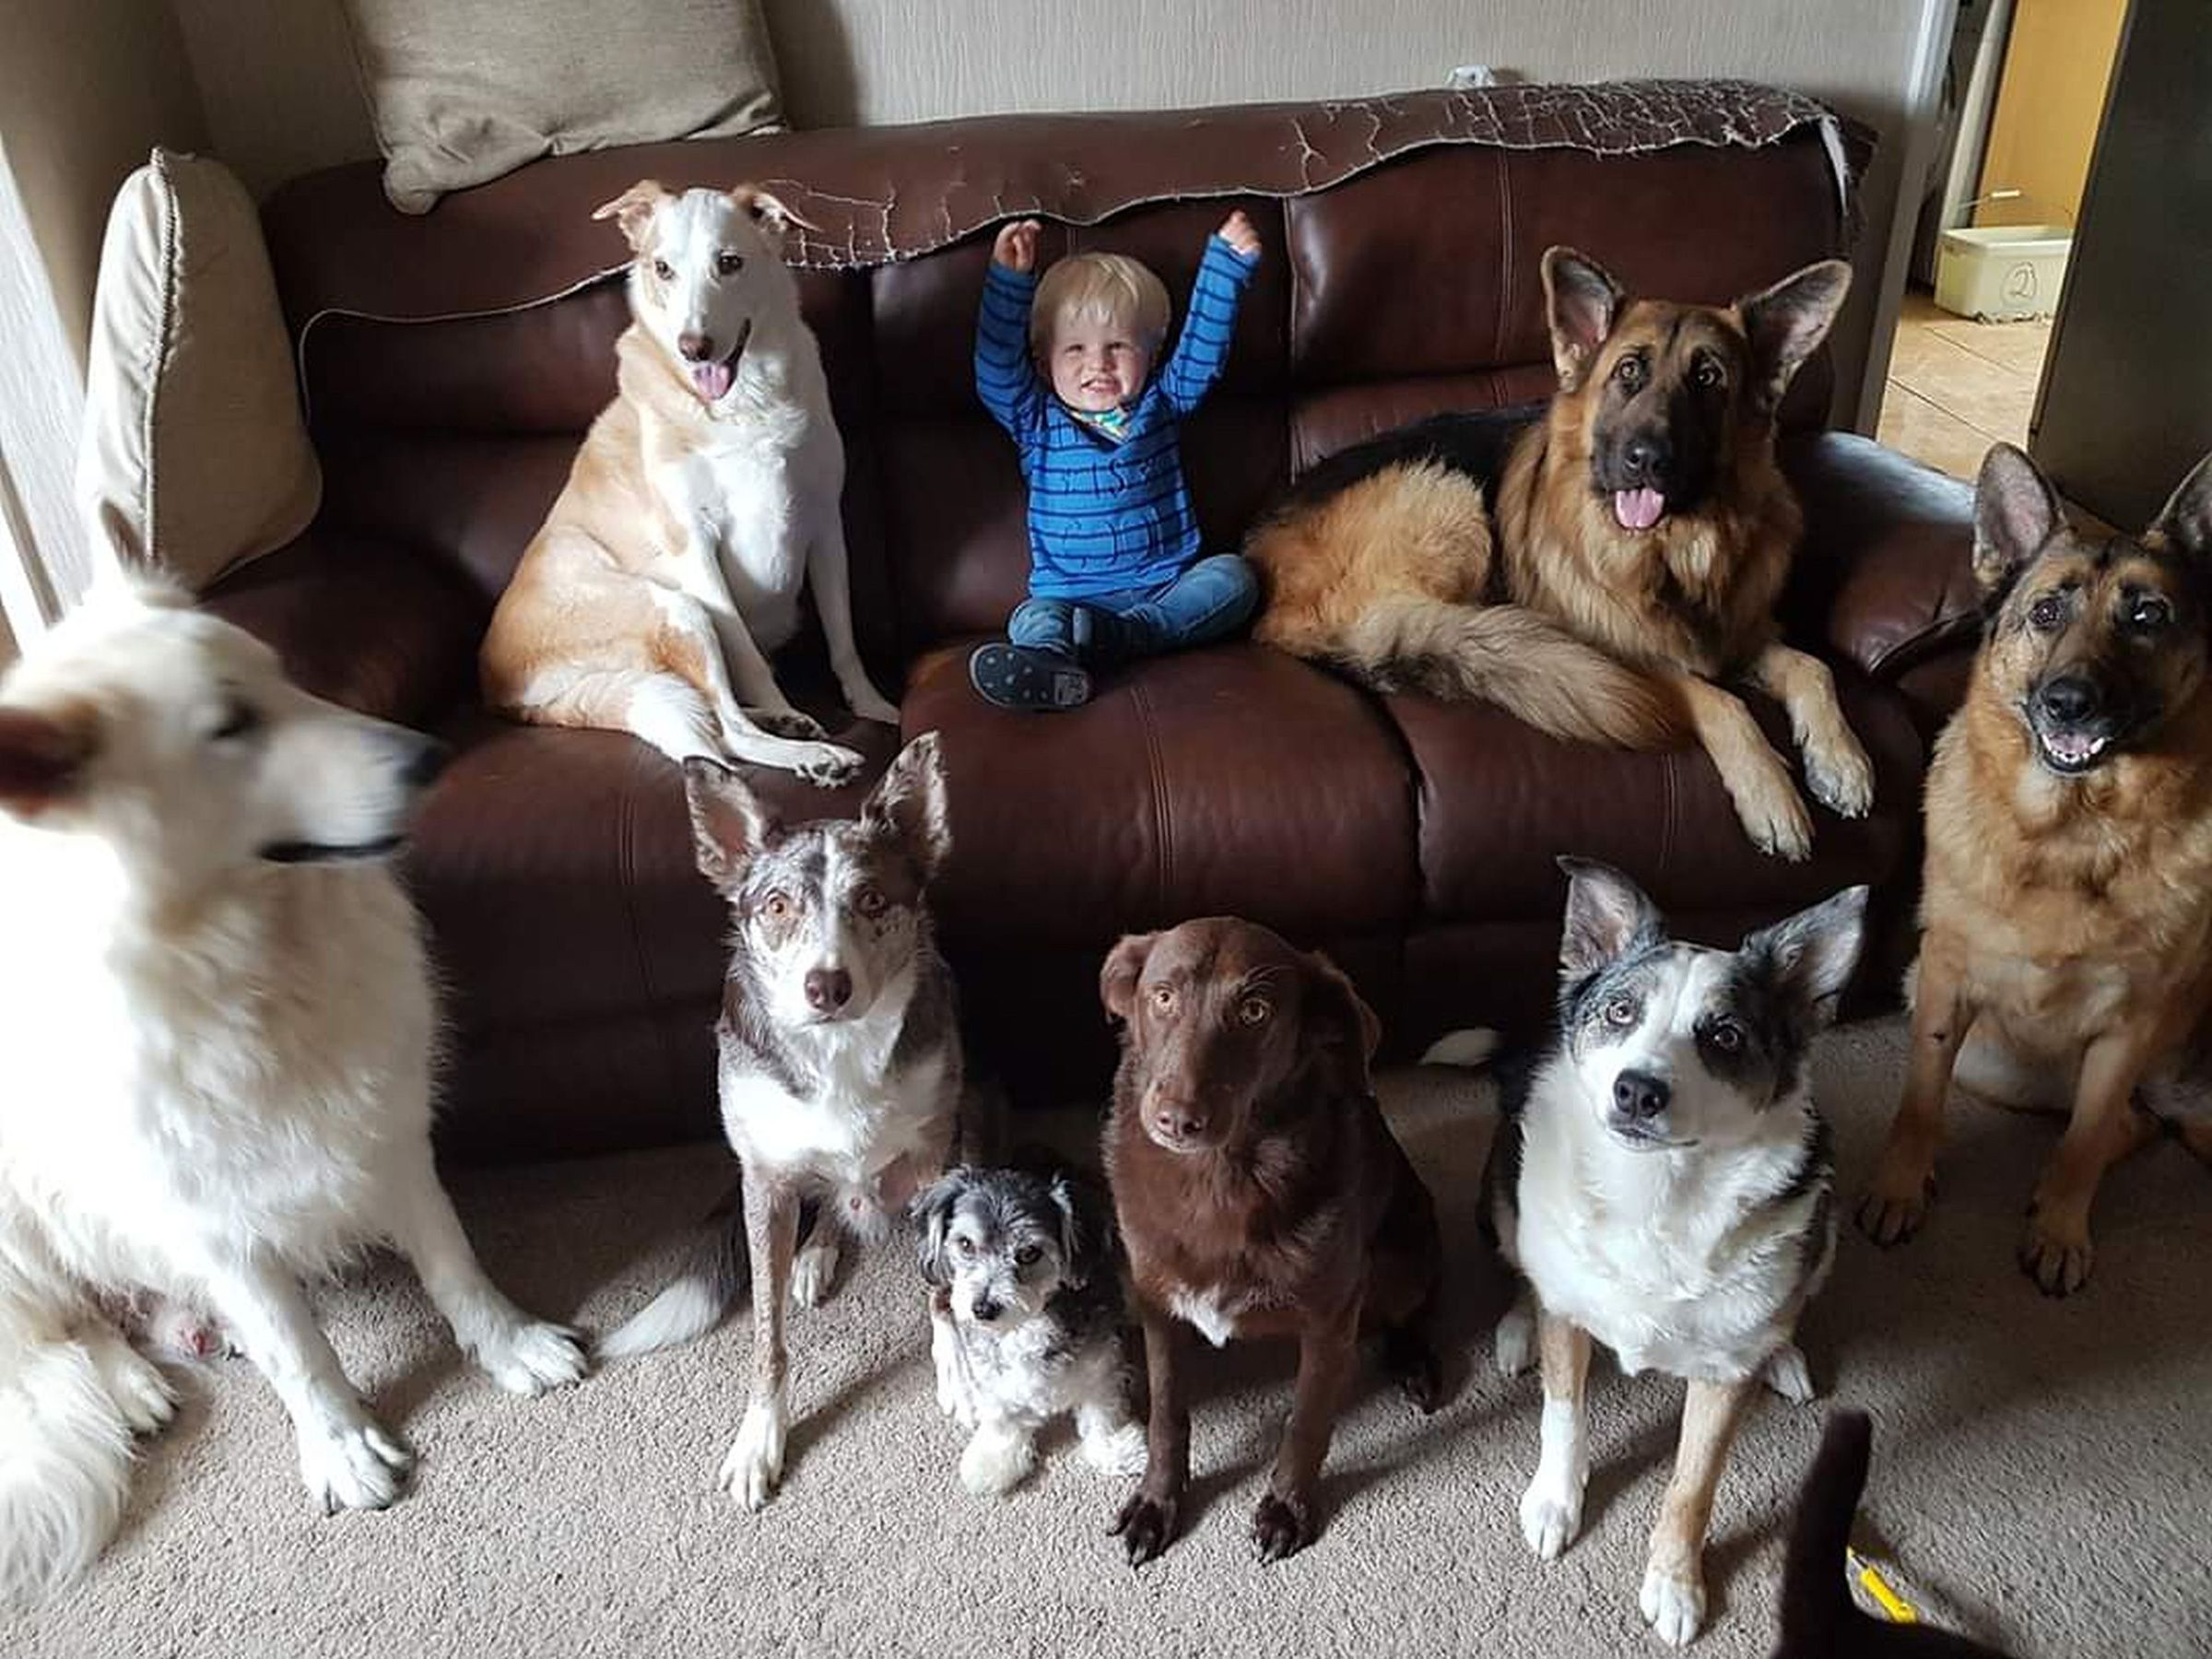 Patient Pet Owner Gets Her 17 Cats And Dogs To Pose For A